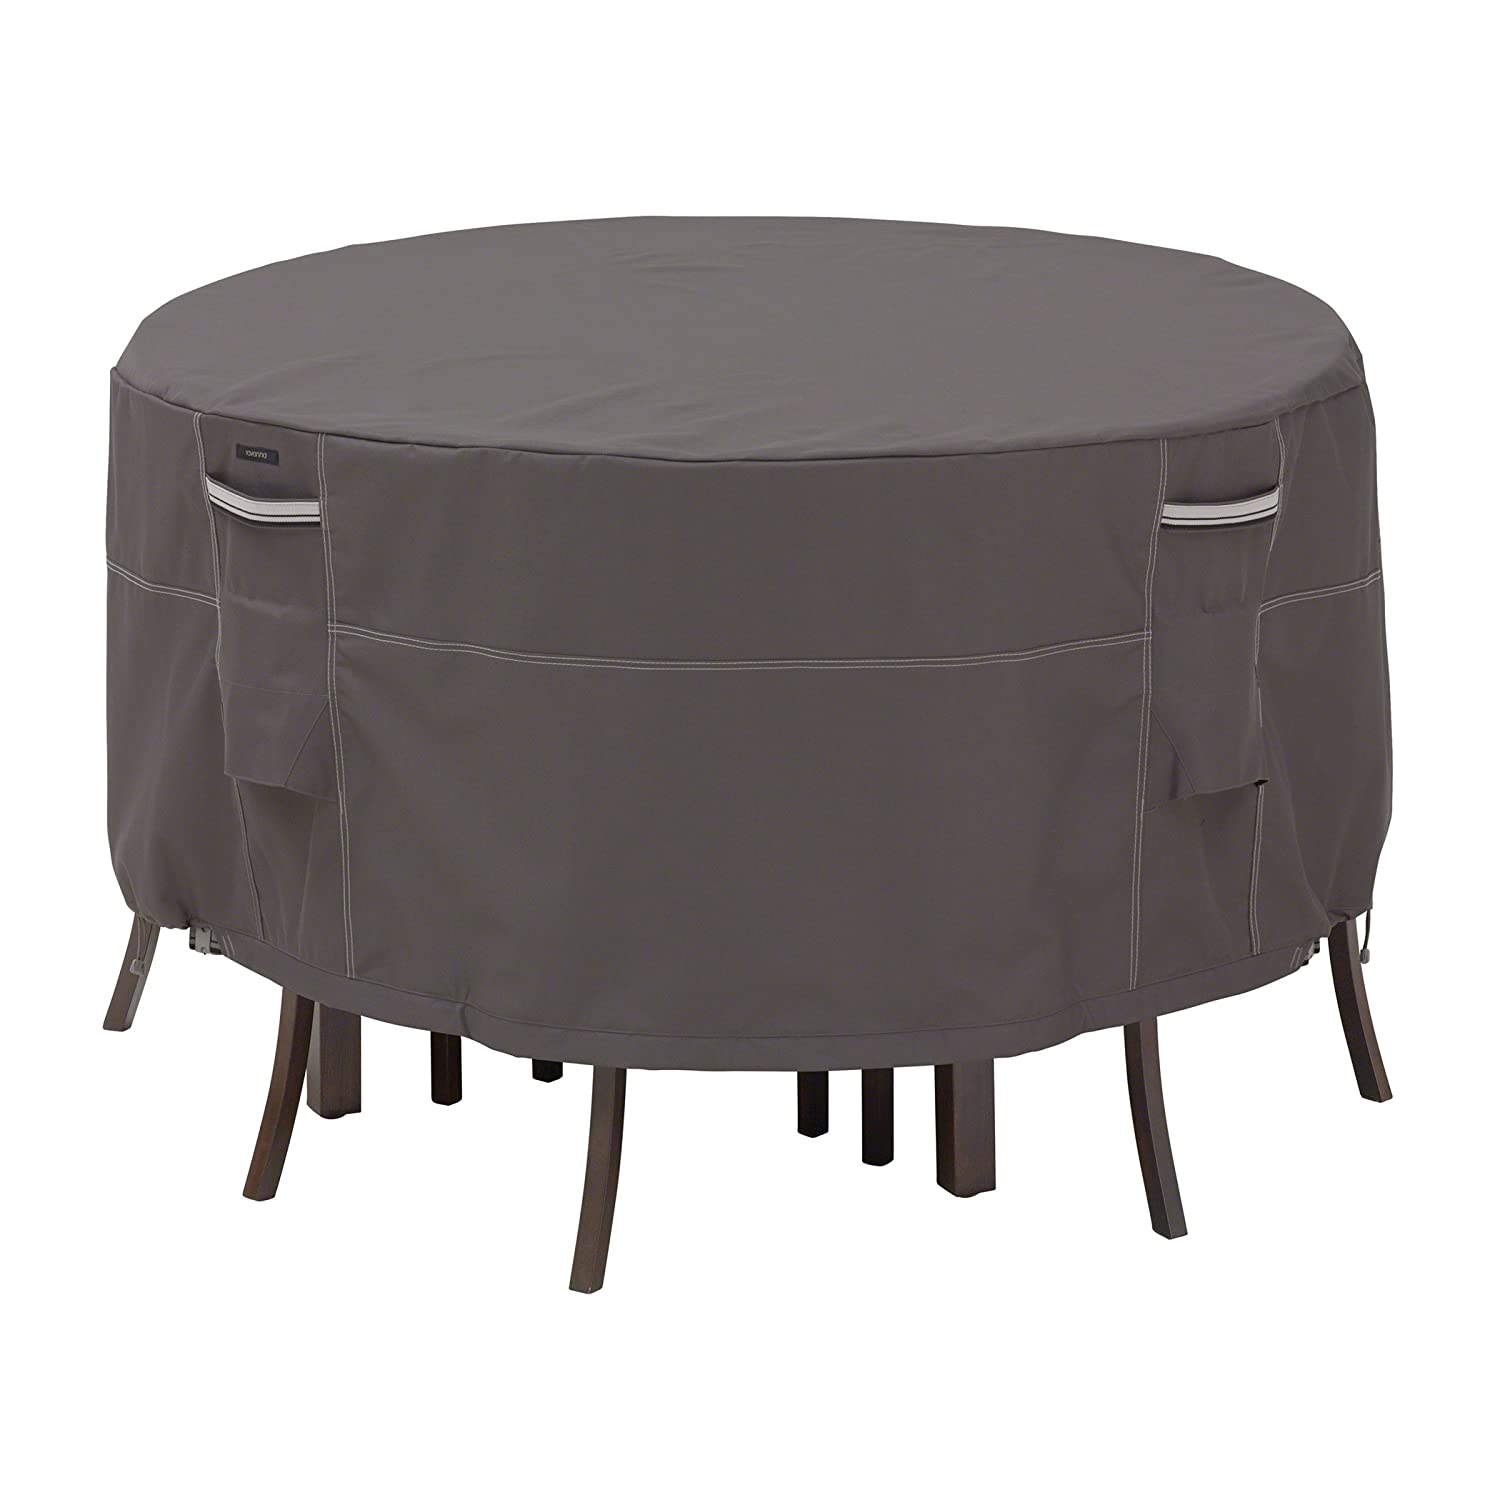 Classic Accessories Ravenna Patio Bistro Table & Chair Cover